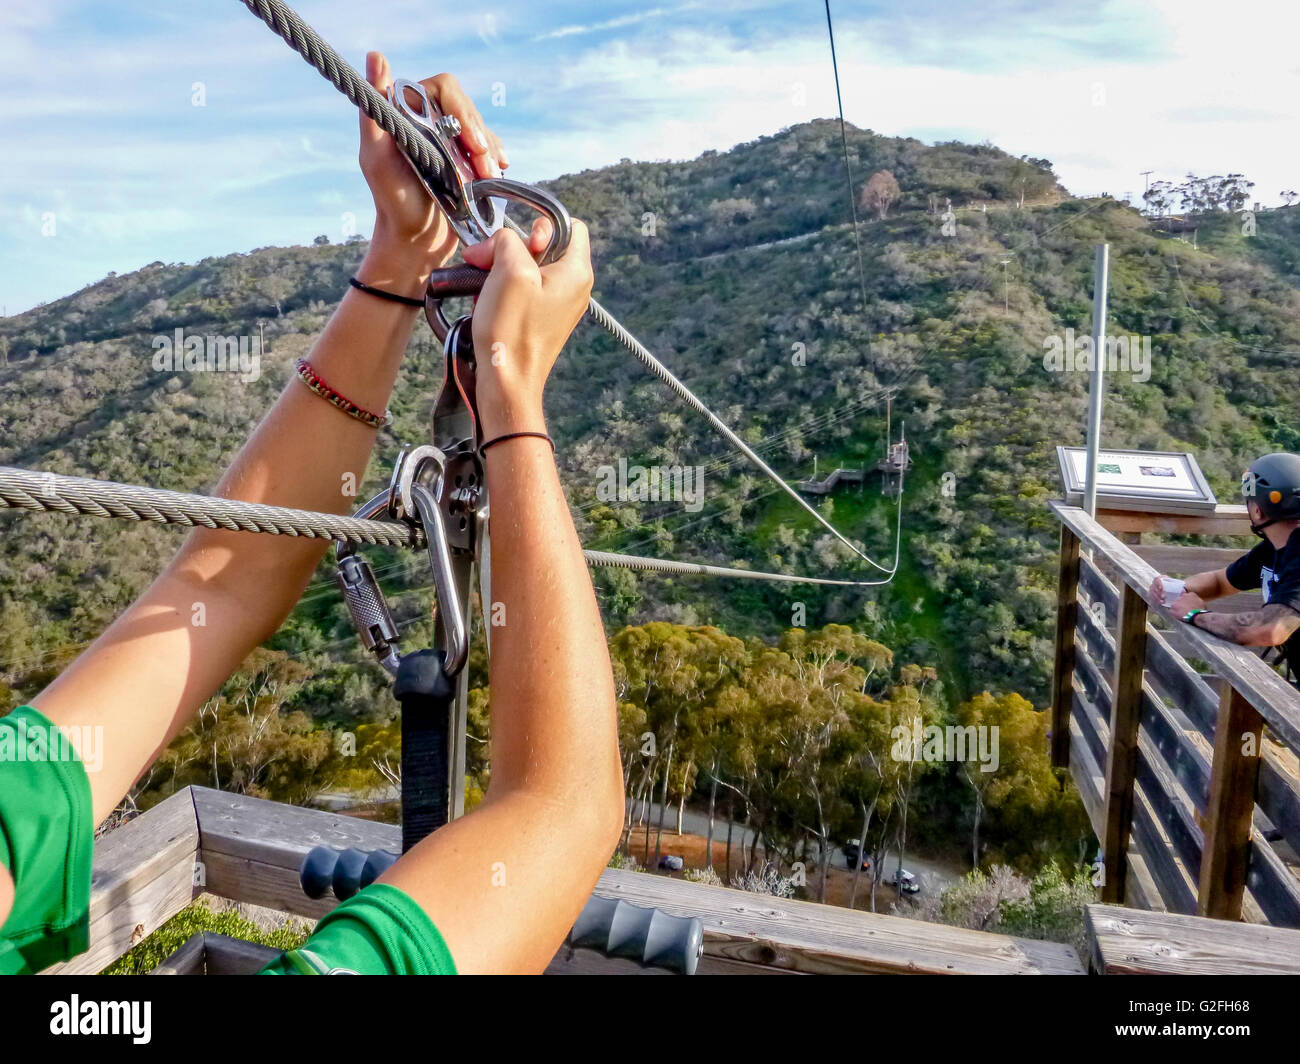 View from zip line platform, getting harness clipped by Catalina Zip Line Eco Tour at Avalon, Catalina Island, California. - Stock Image